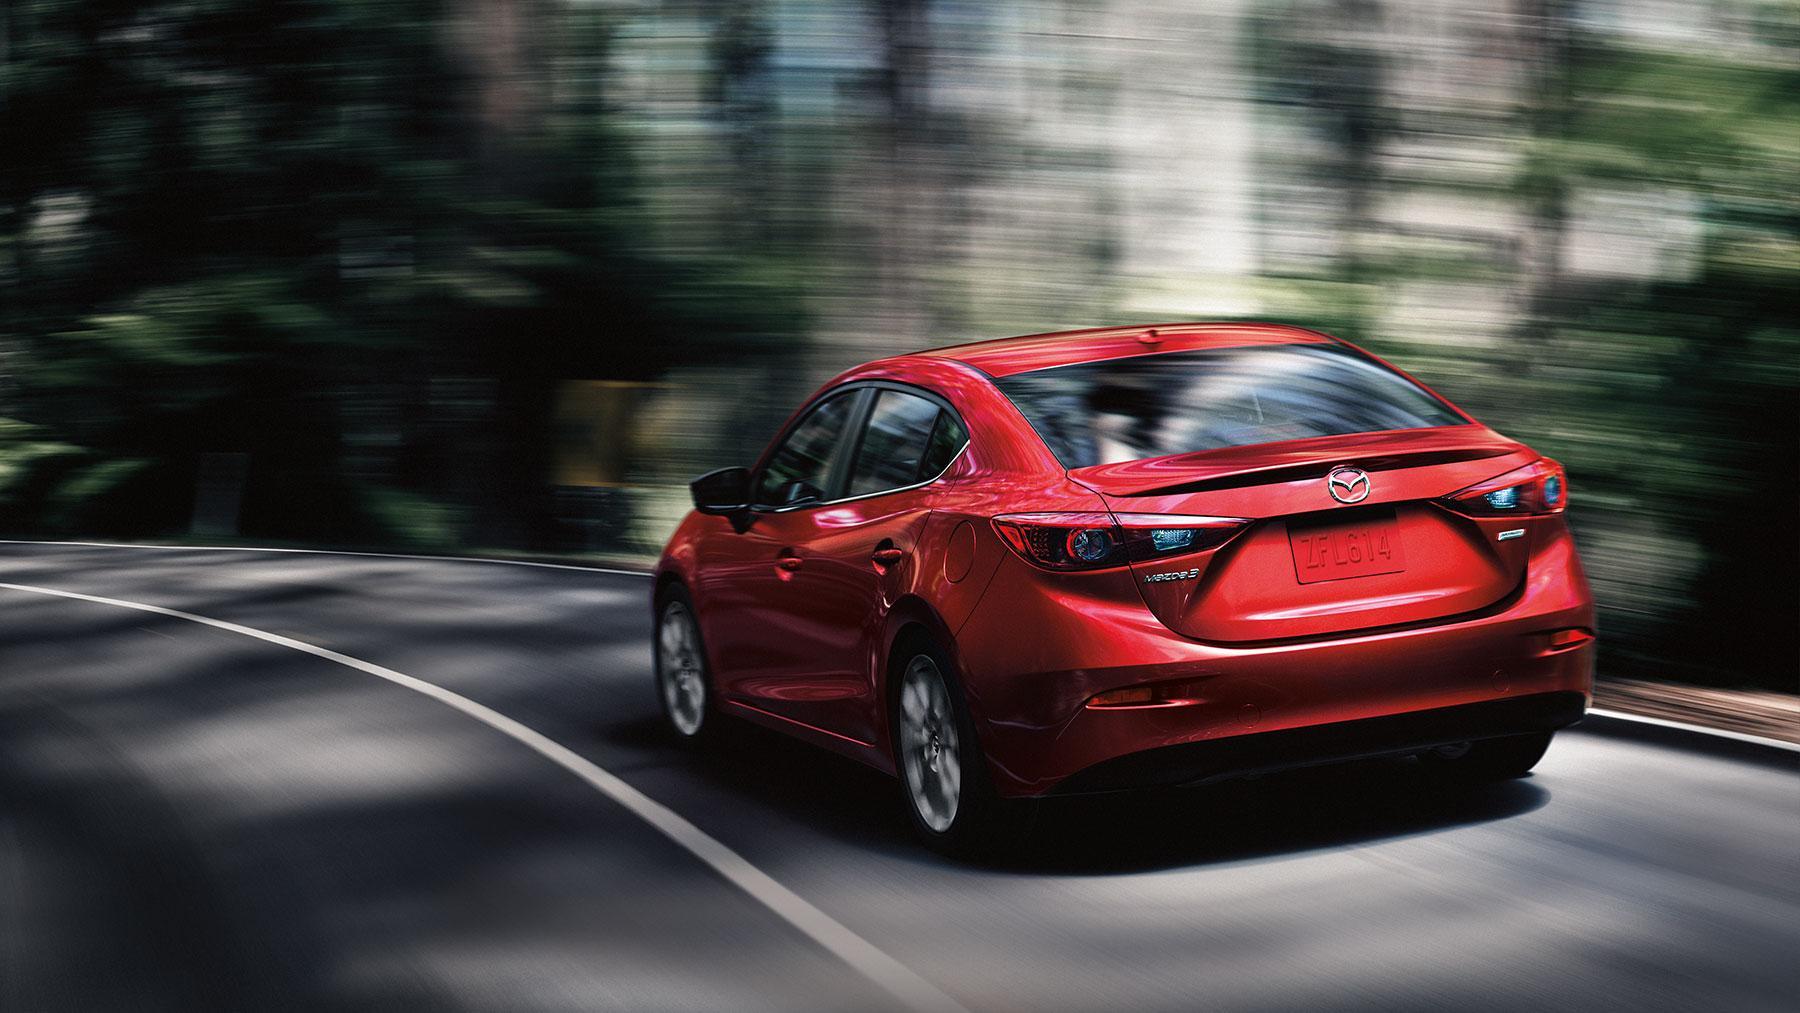 2019 Mazda 3 red color rear back side view on highway in forest 4k